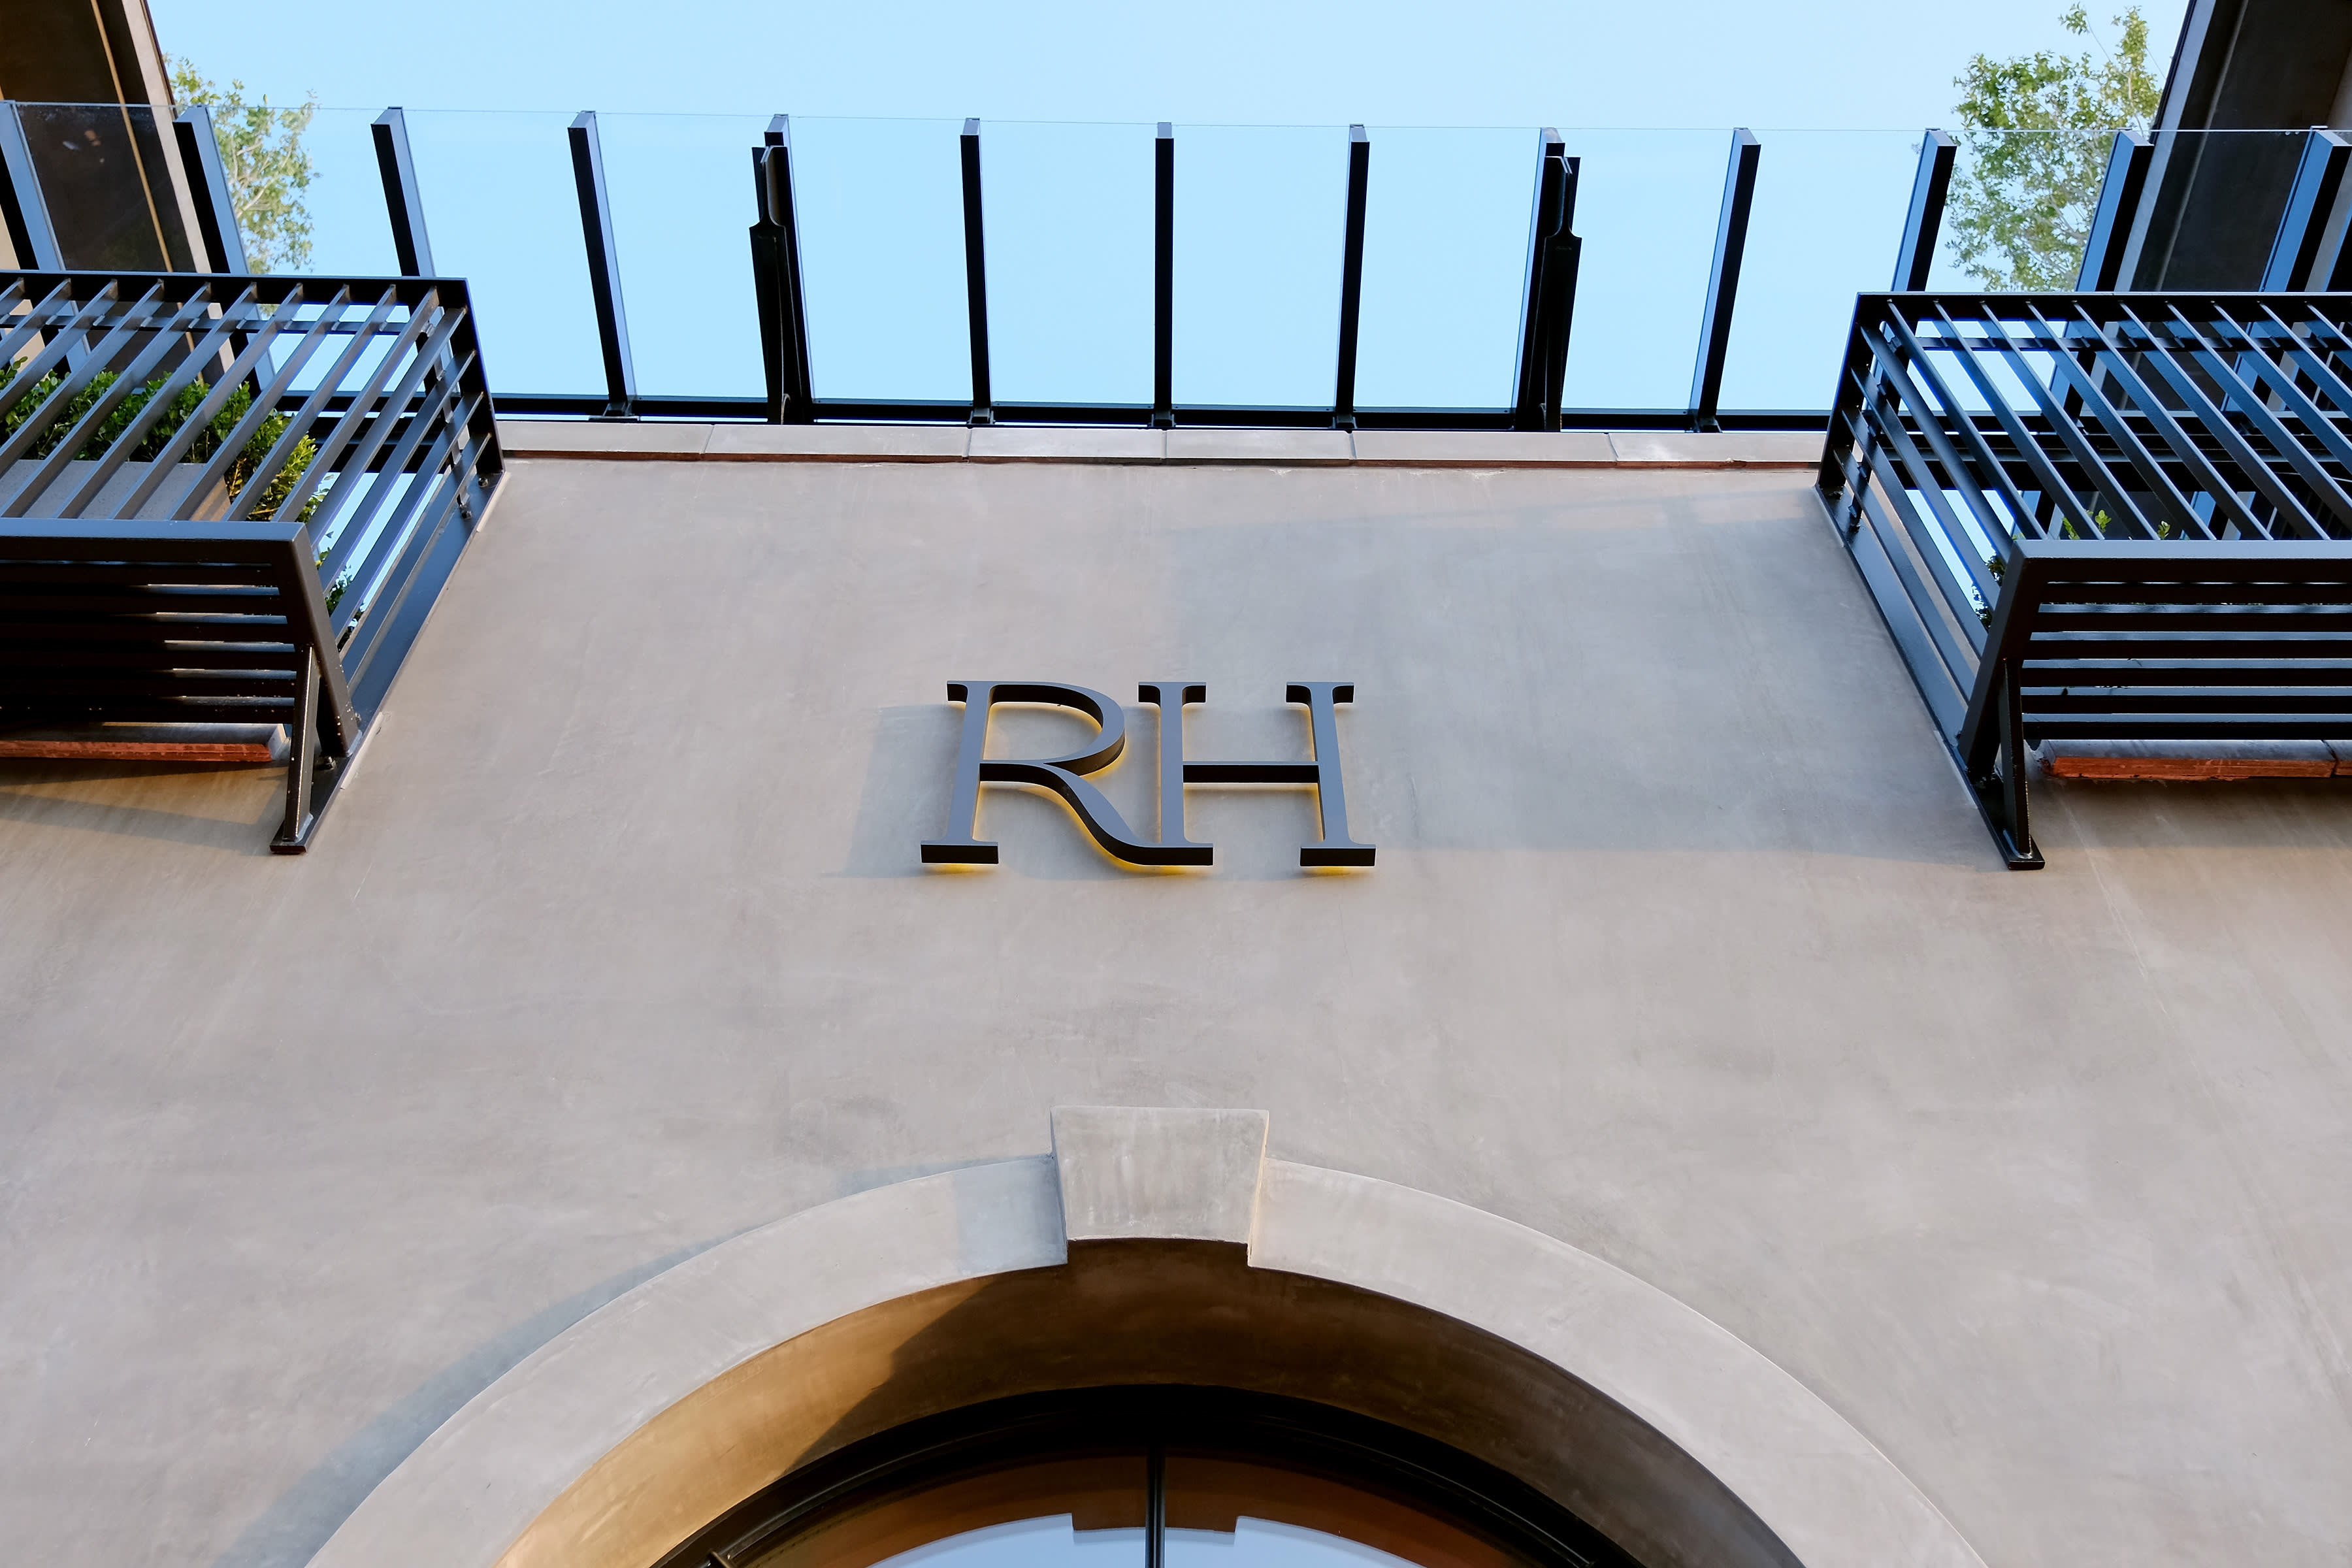 RH shares jump after furniture retailer reports earnings, sales beat